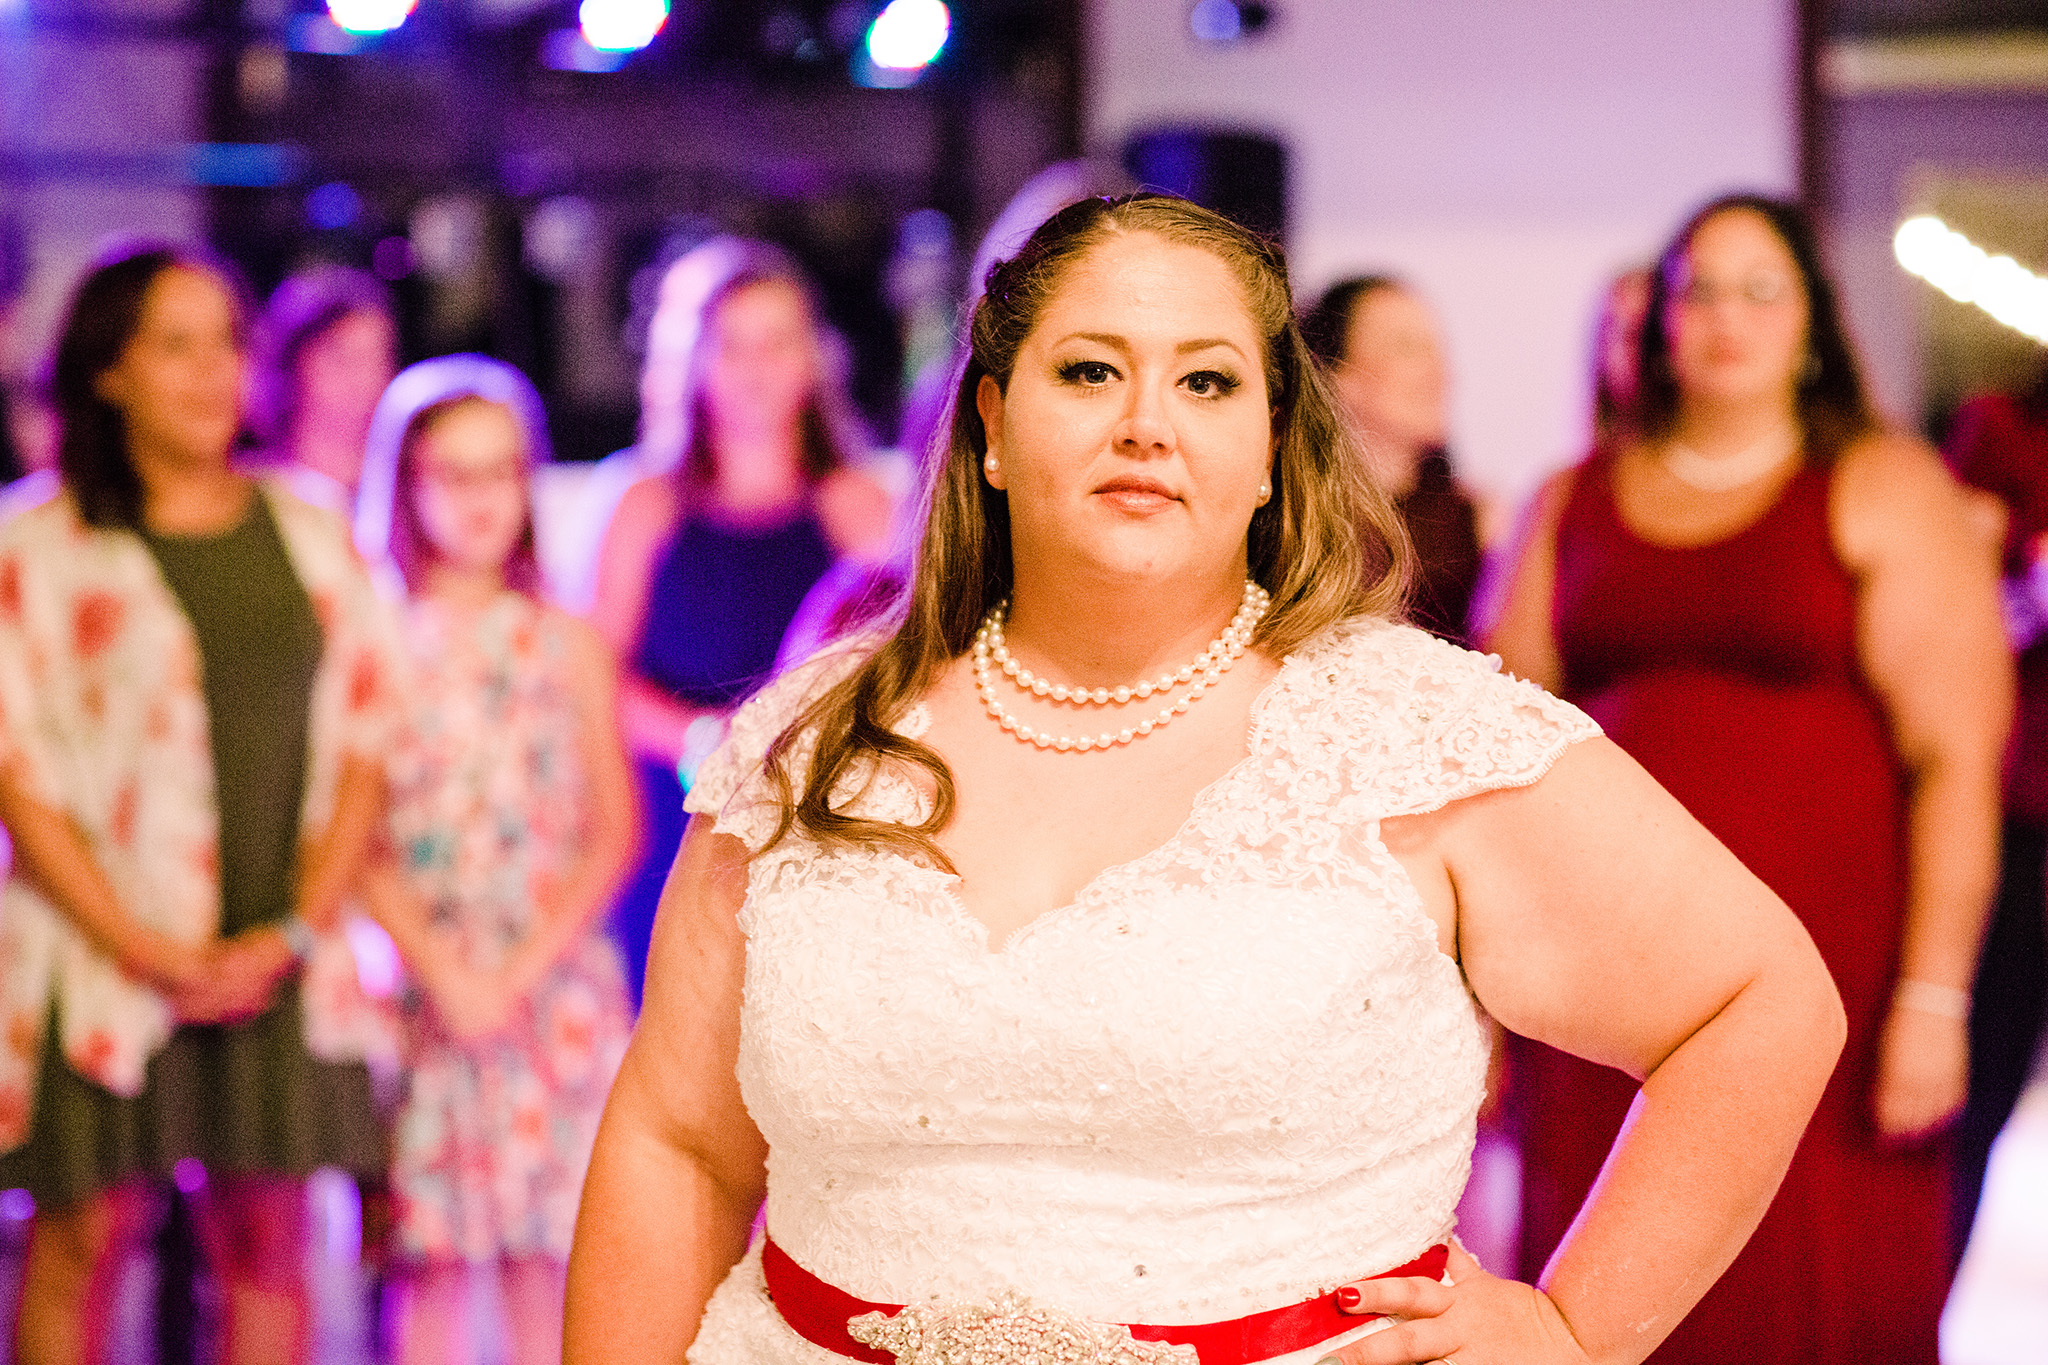 SPC_LoveladyWedding-20956.jpg